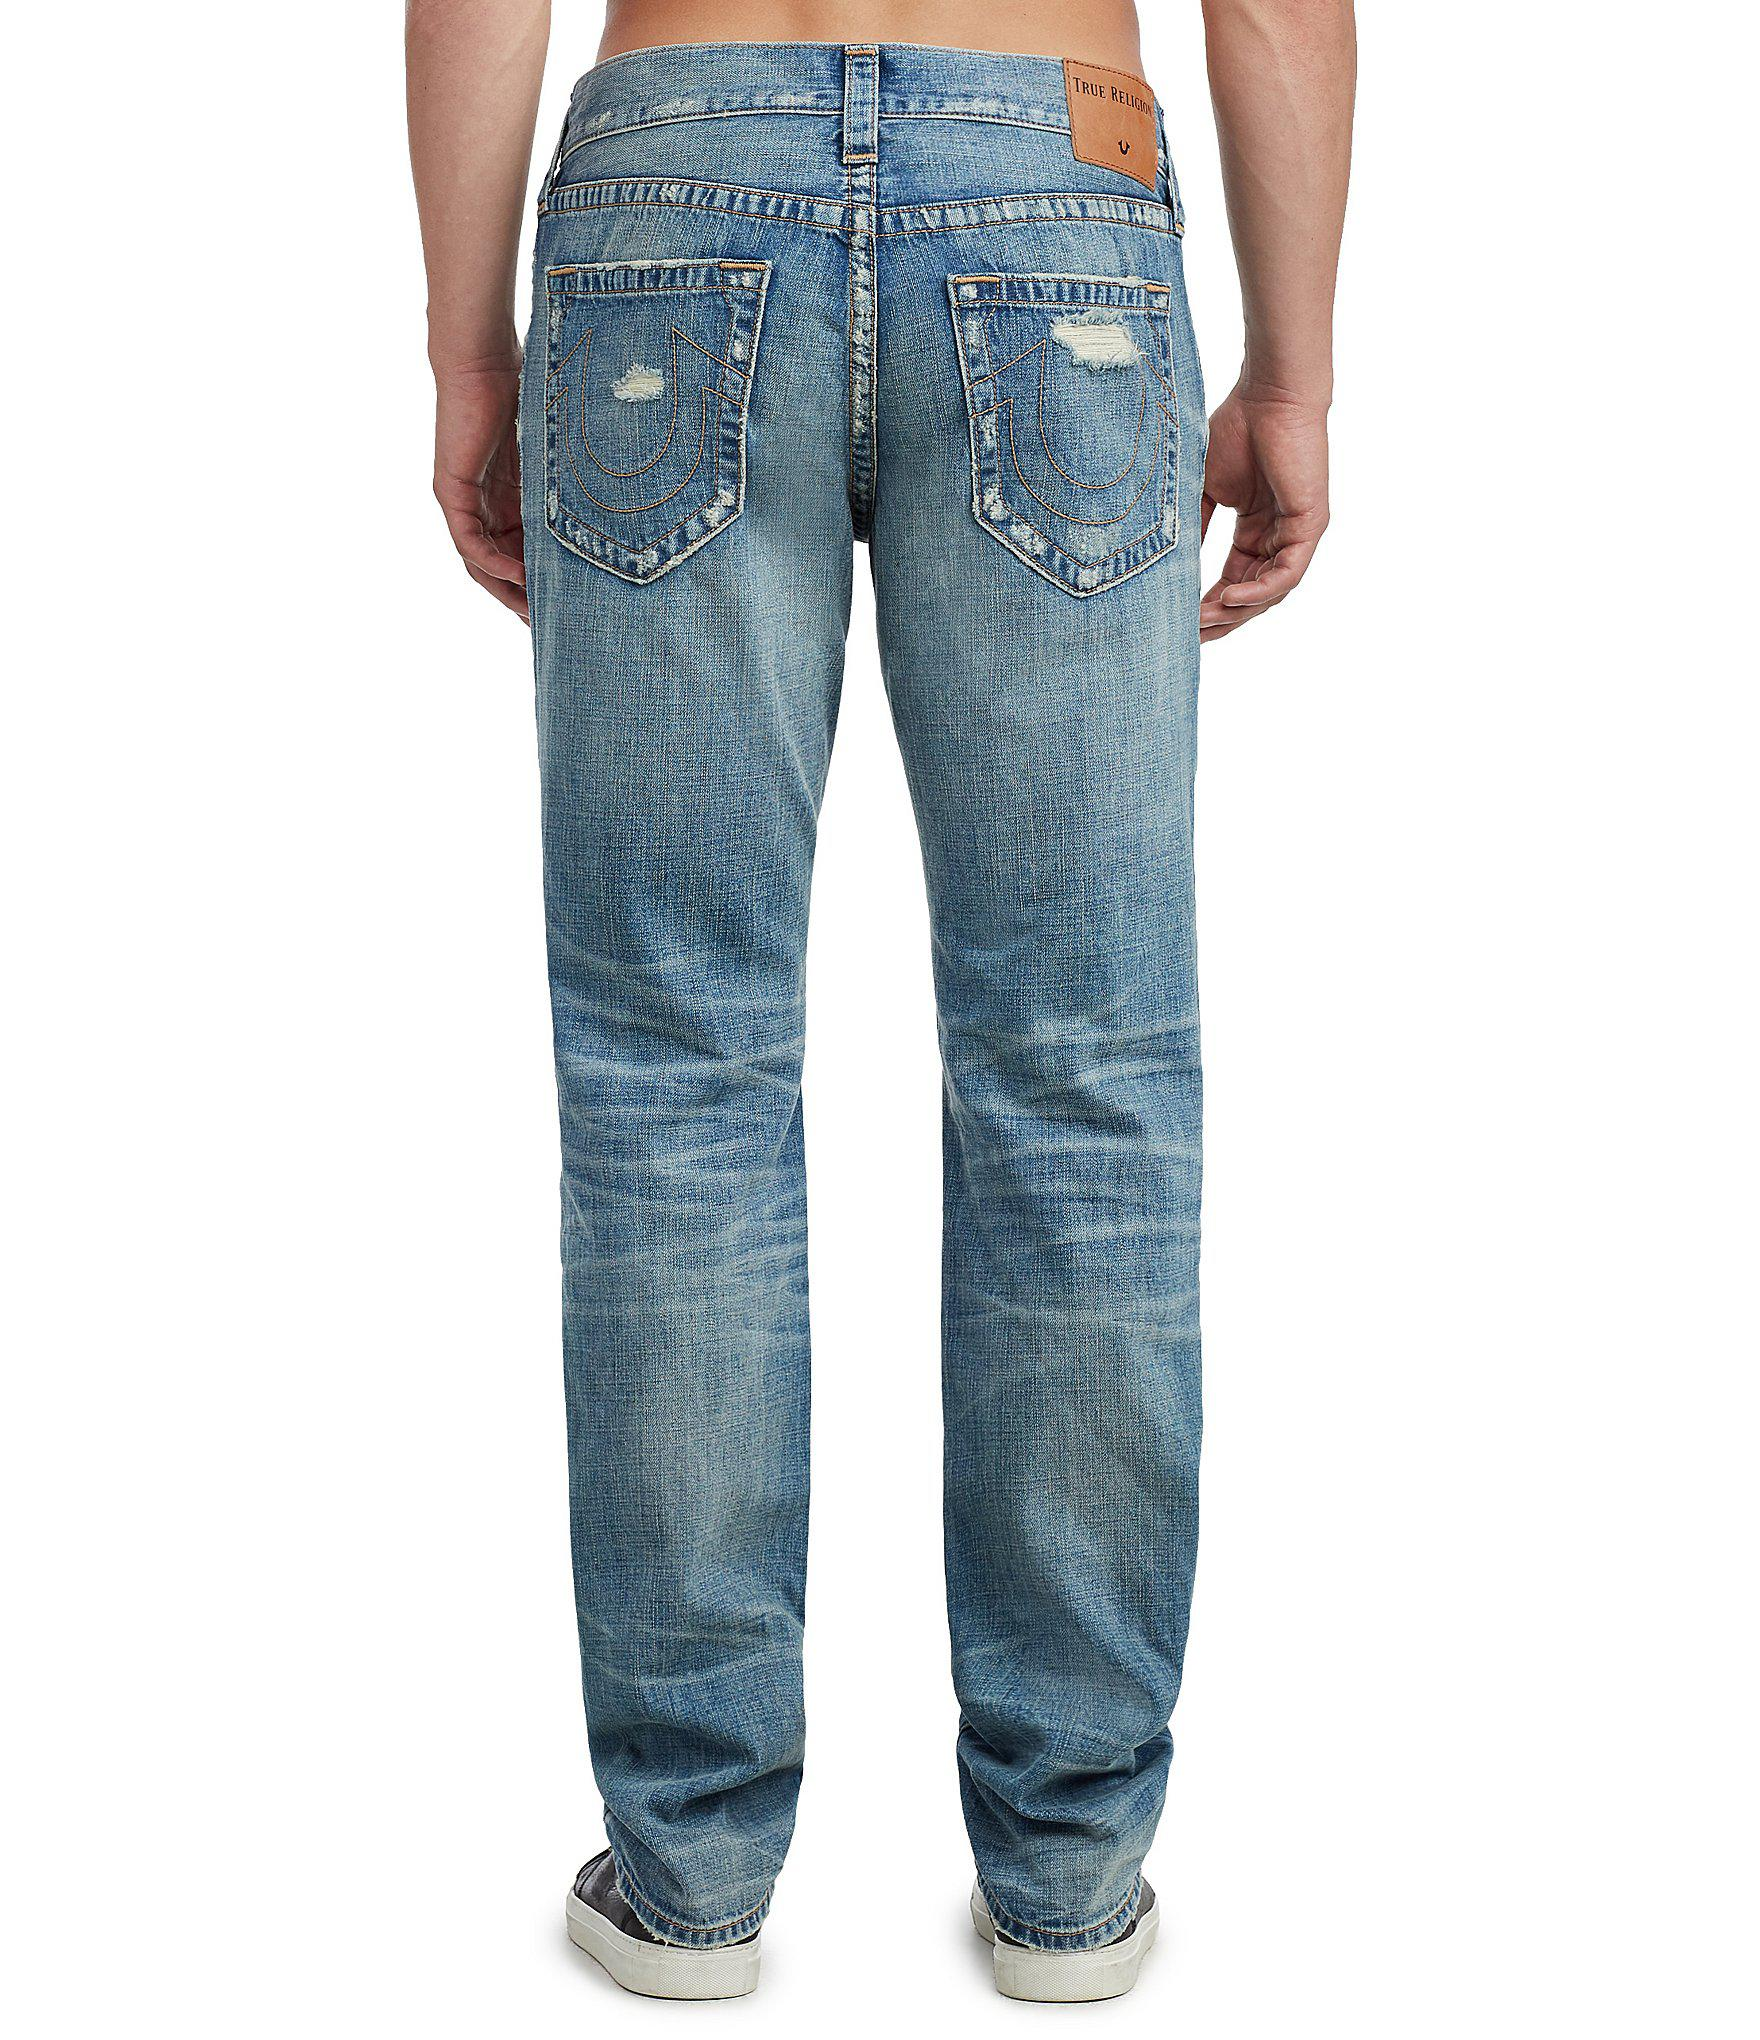 a36a96cb7 Lyst - True Religion Geno Damages Slim Straight Jeans in Blue for Men